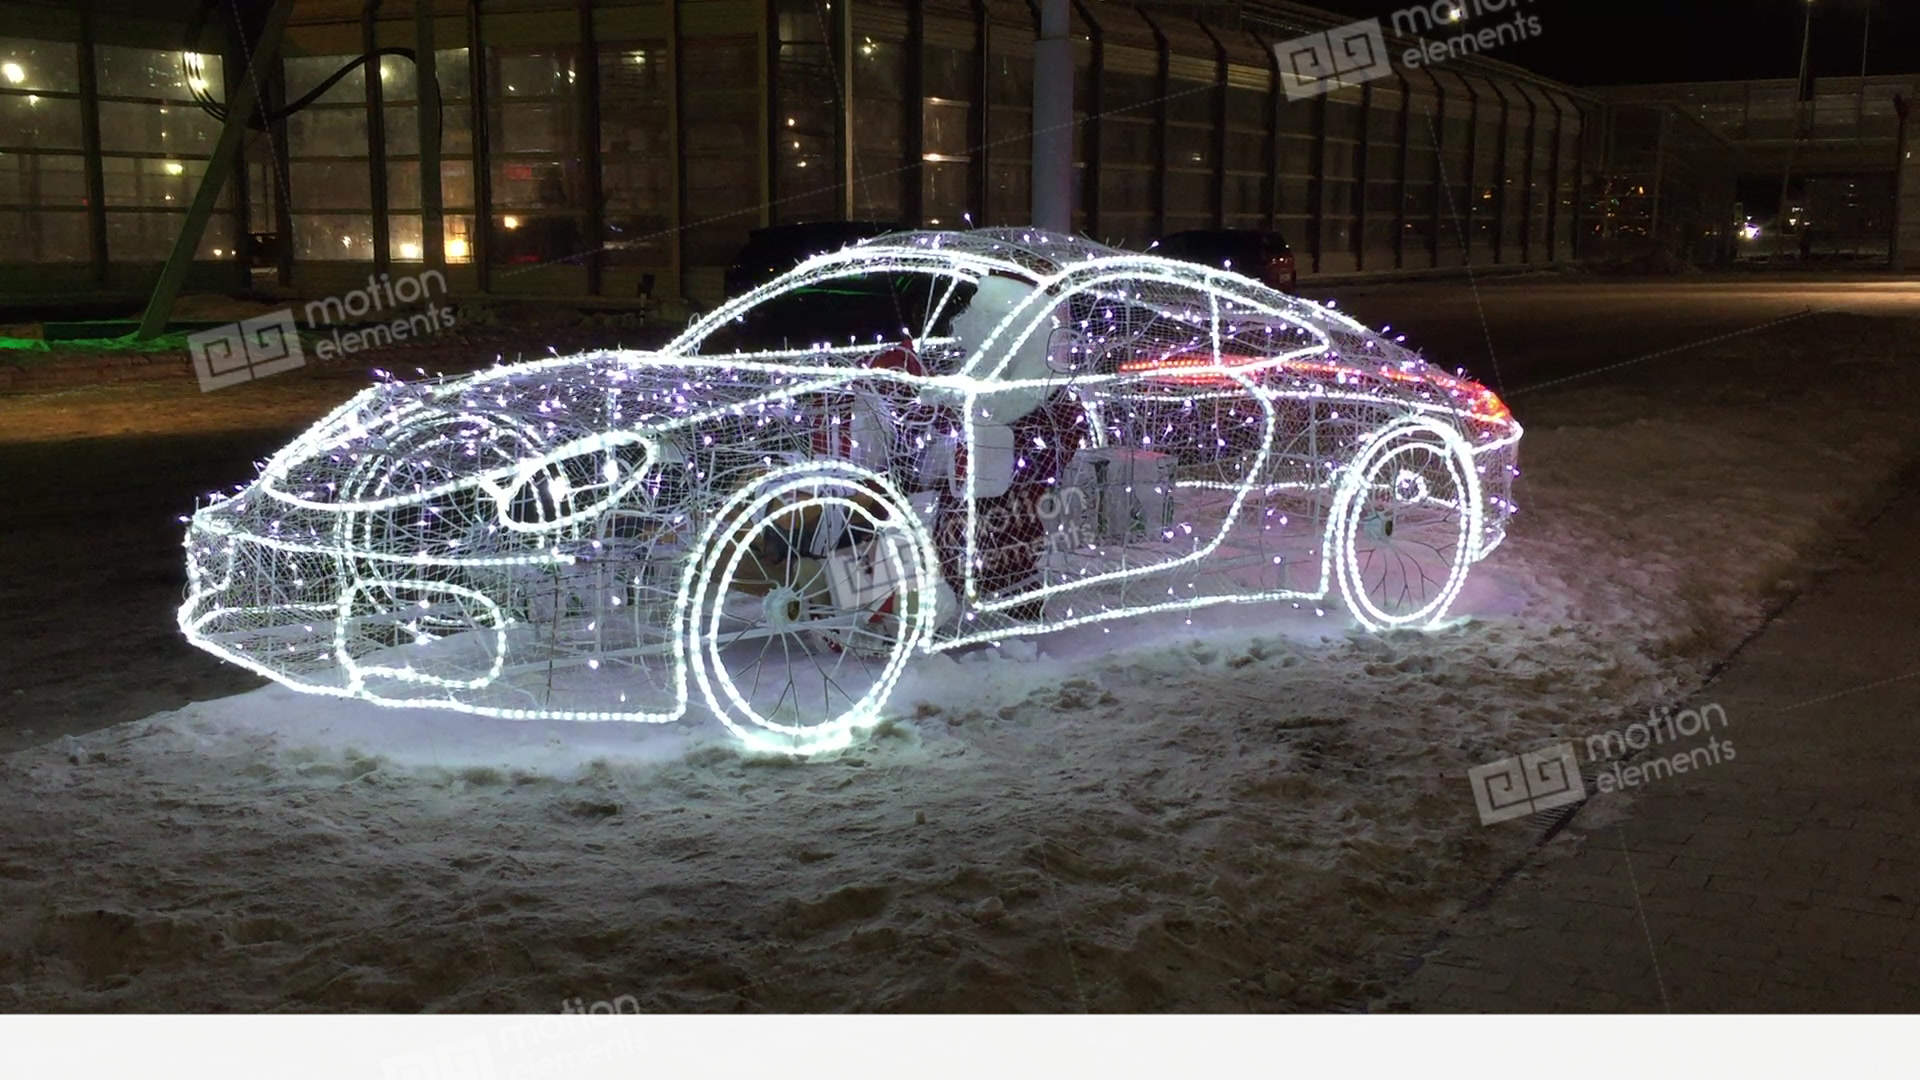 car frame with flashing lights at night on the street. cold snow